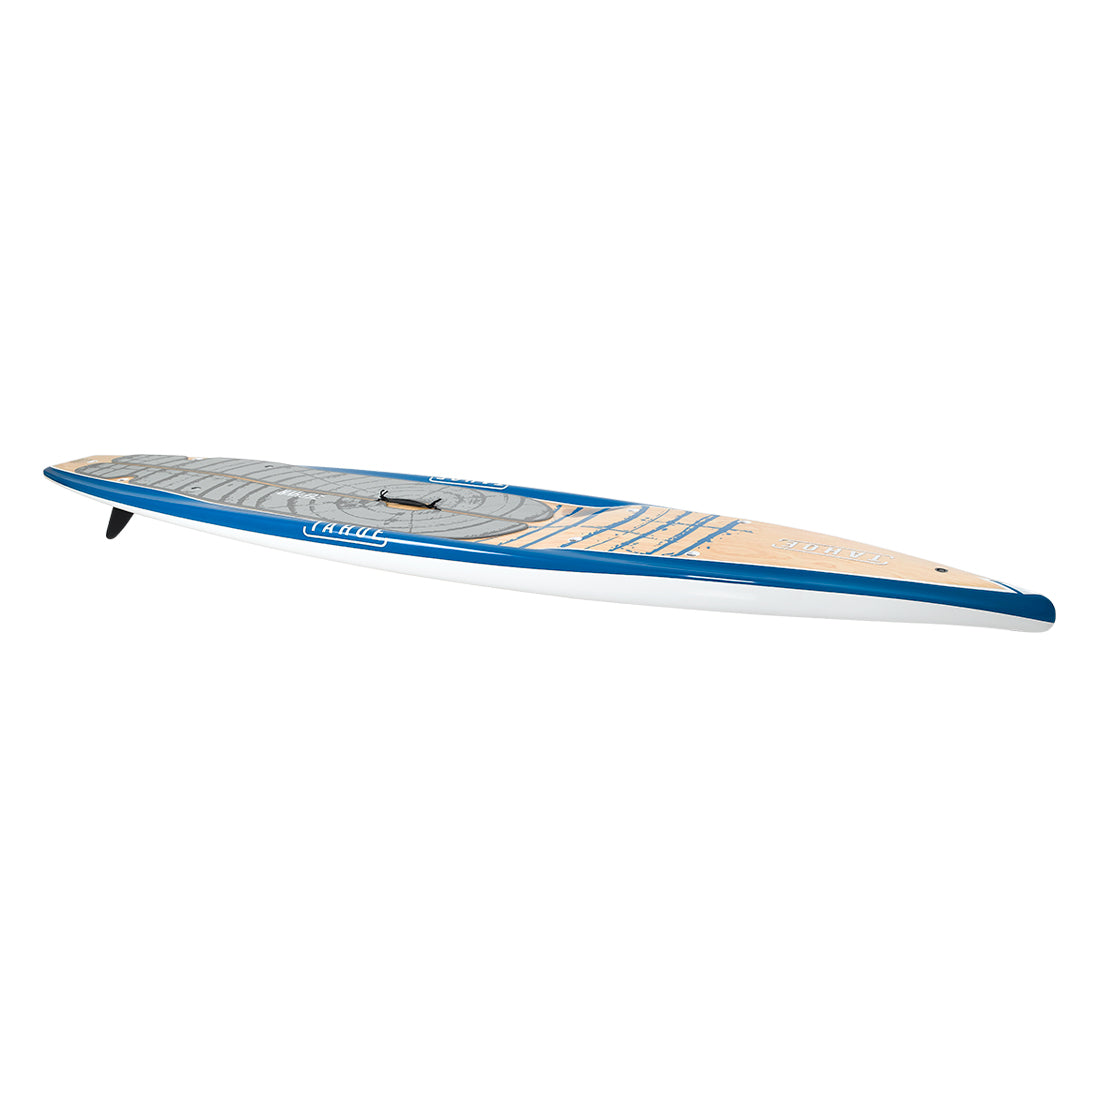 Tahoe SUP Zephyr Touring Standup Paddle Board Package Paddle Boards 4theoutdoors Canada SUP outdoors